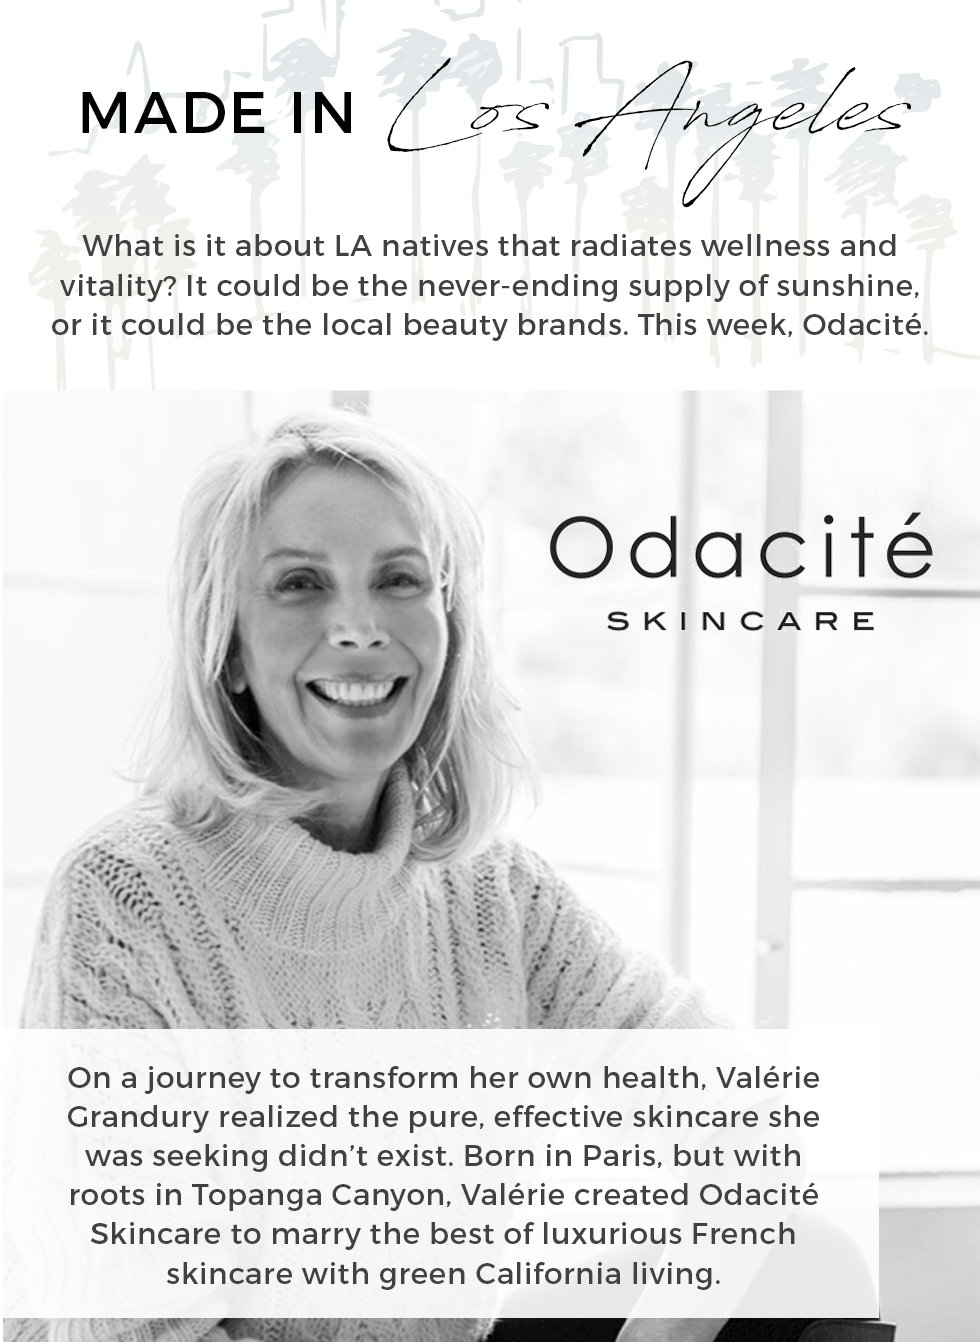 Made in LA: Odacite Gift with Purchase